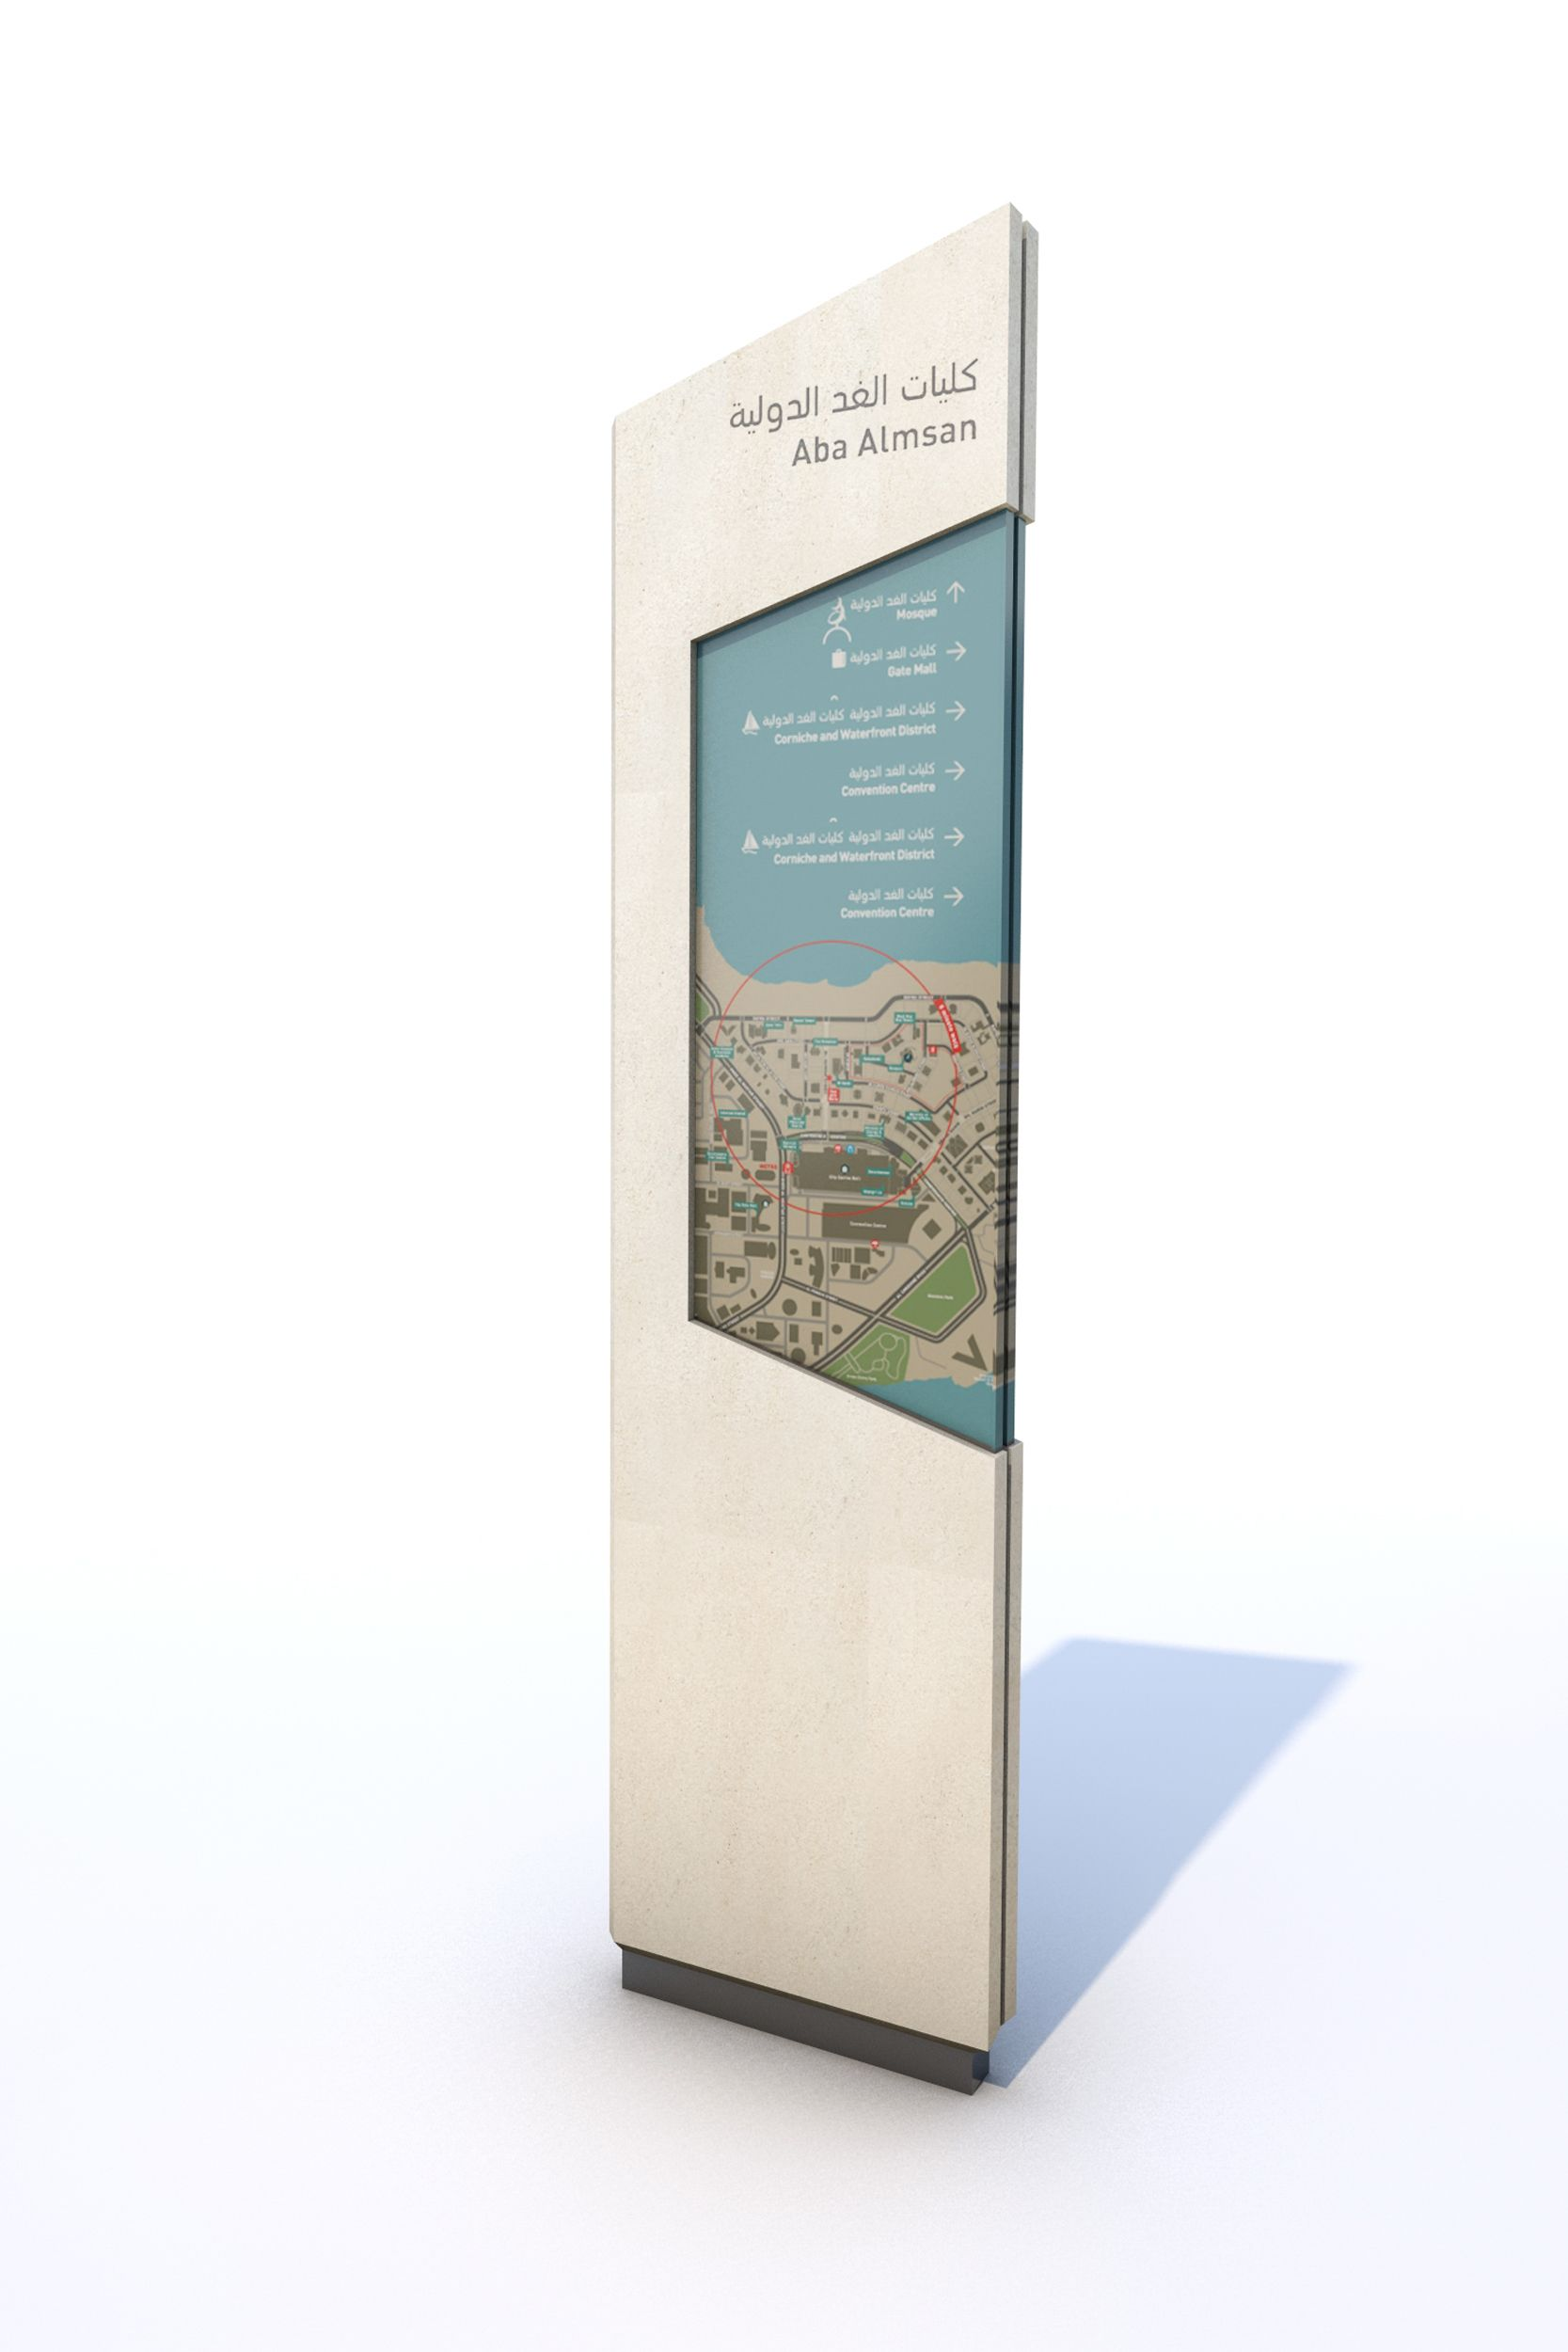 Slim Angled Sign Structures Designed To Encourage Pedestrian Movement Wayfinding Signage Design Wayfinding Signage Design Wayfinding Signs